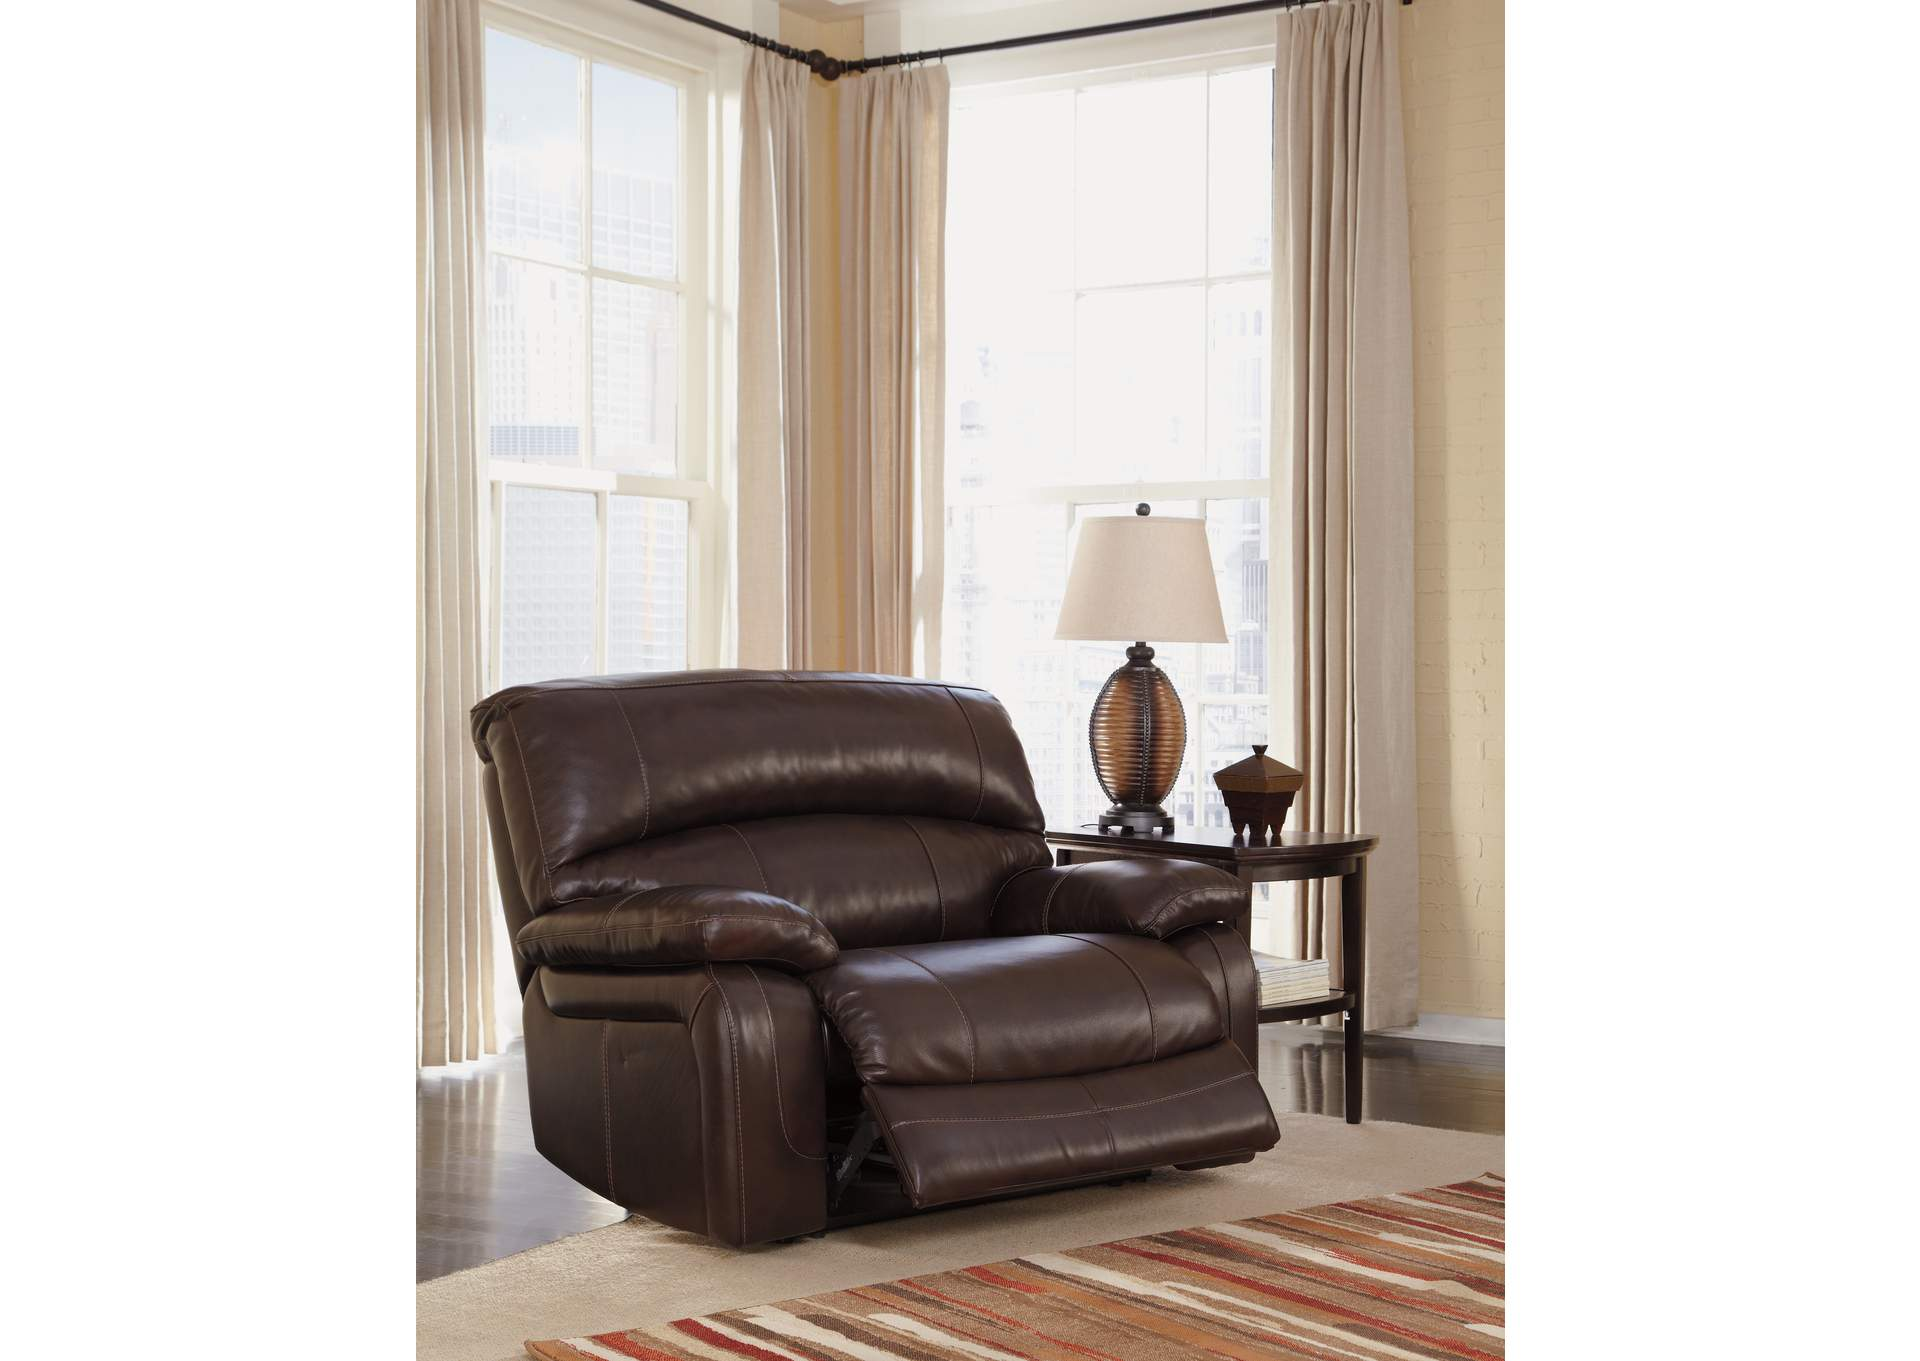 Furniture exchange damacio dark brown zero wall power wide for Furniture exchange